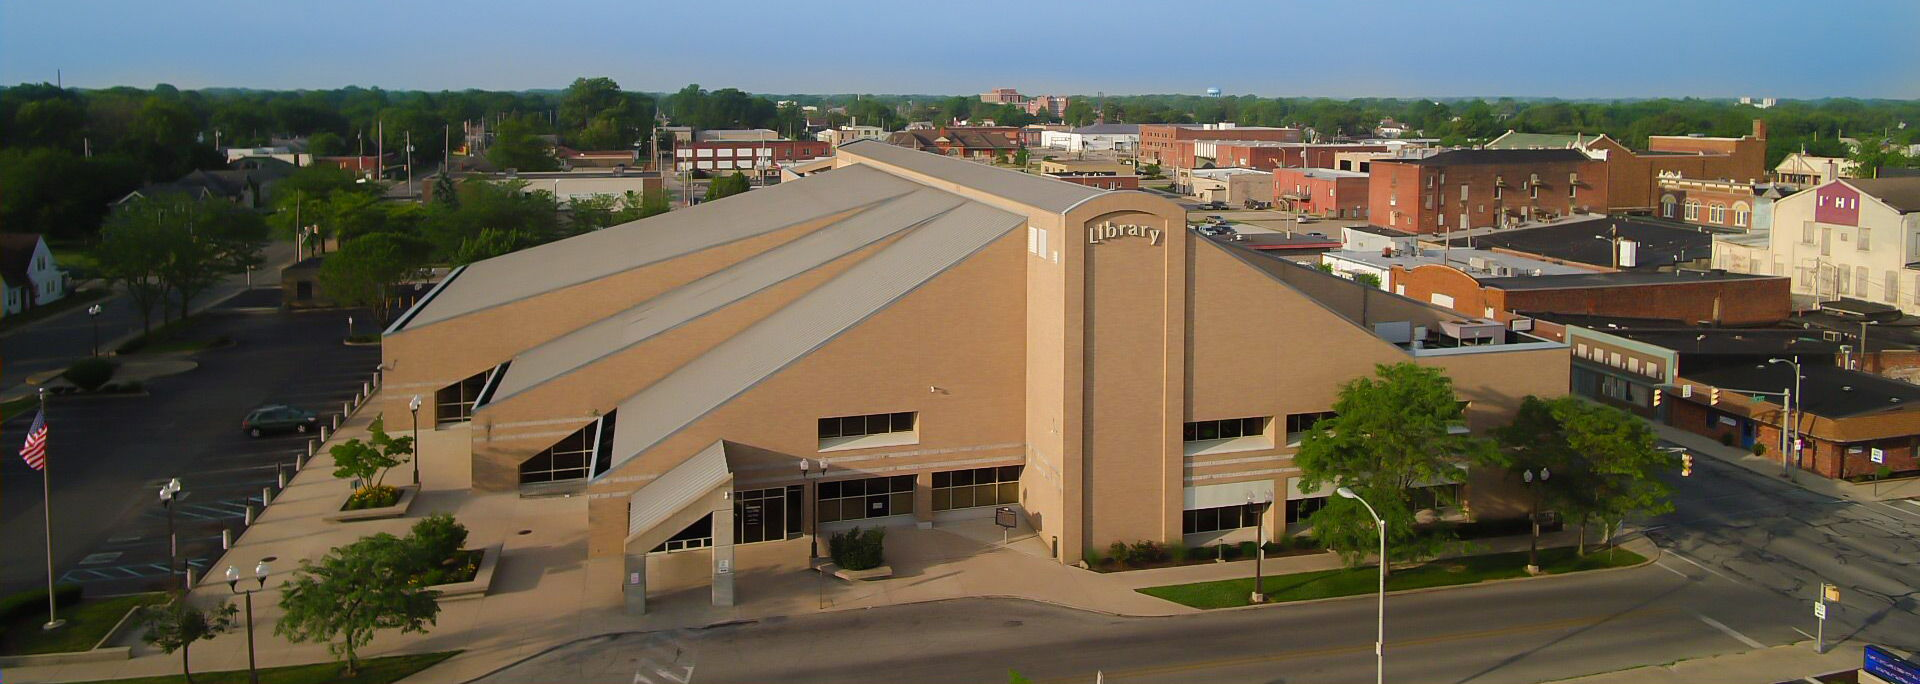 Aerial view of Main Library